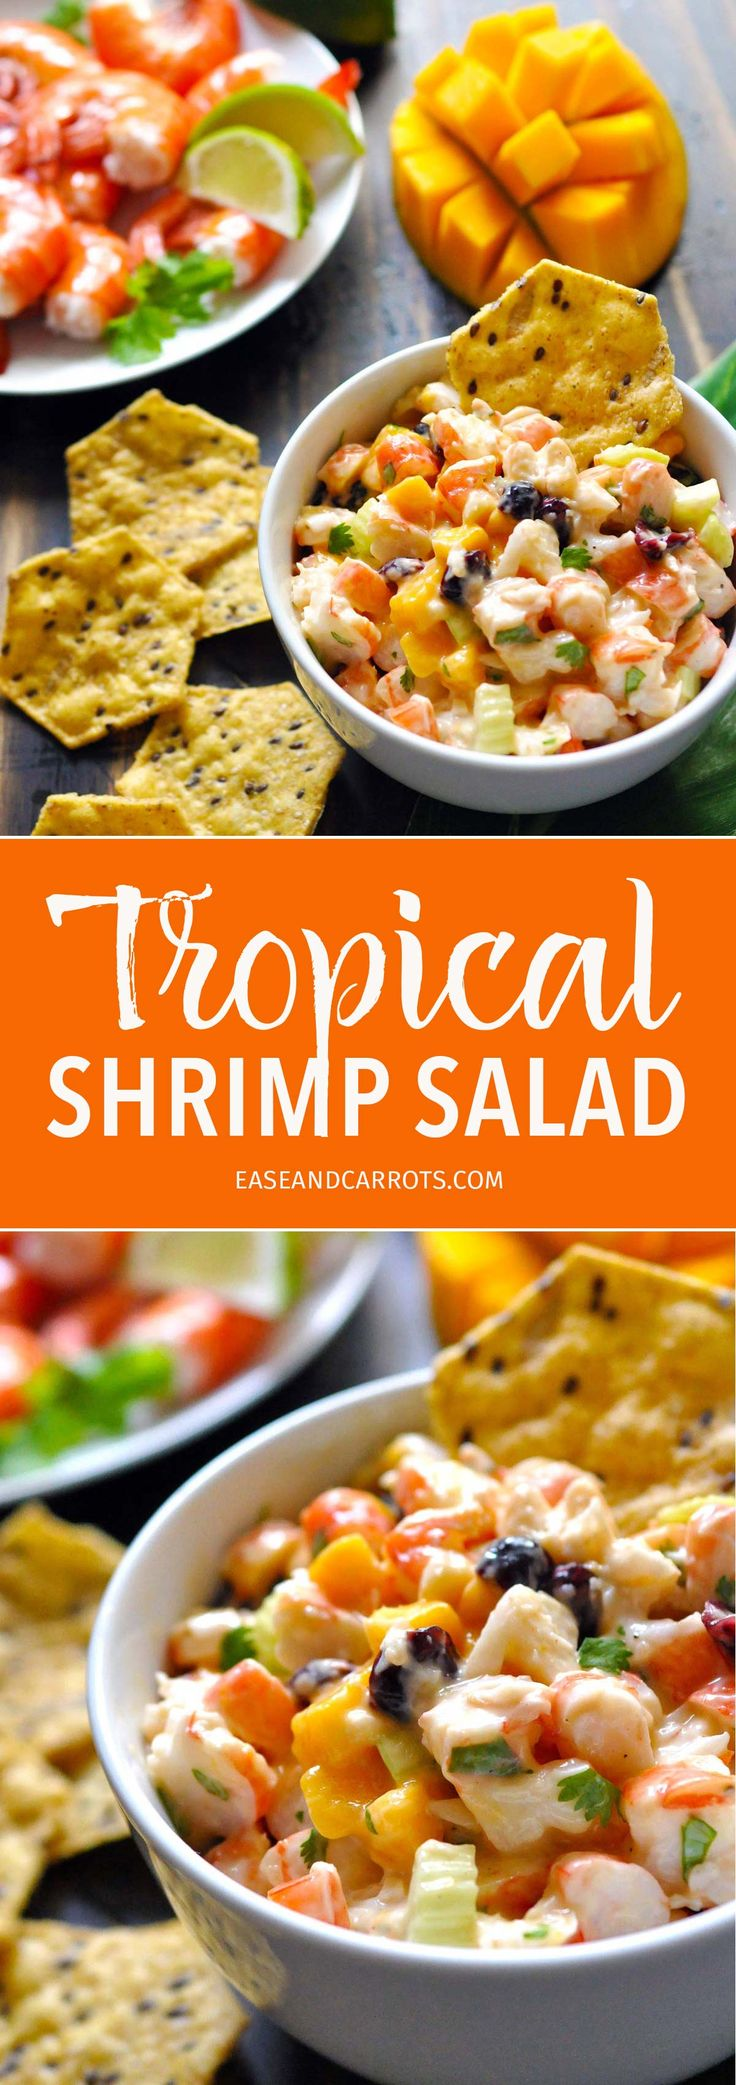 Tropical Shrimp Salad Recipe. This shrimp salad is great for summer with mango and craisins for a fun tropical twist!